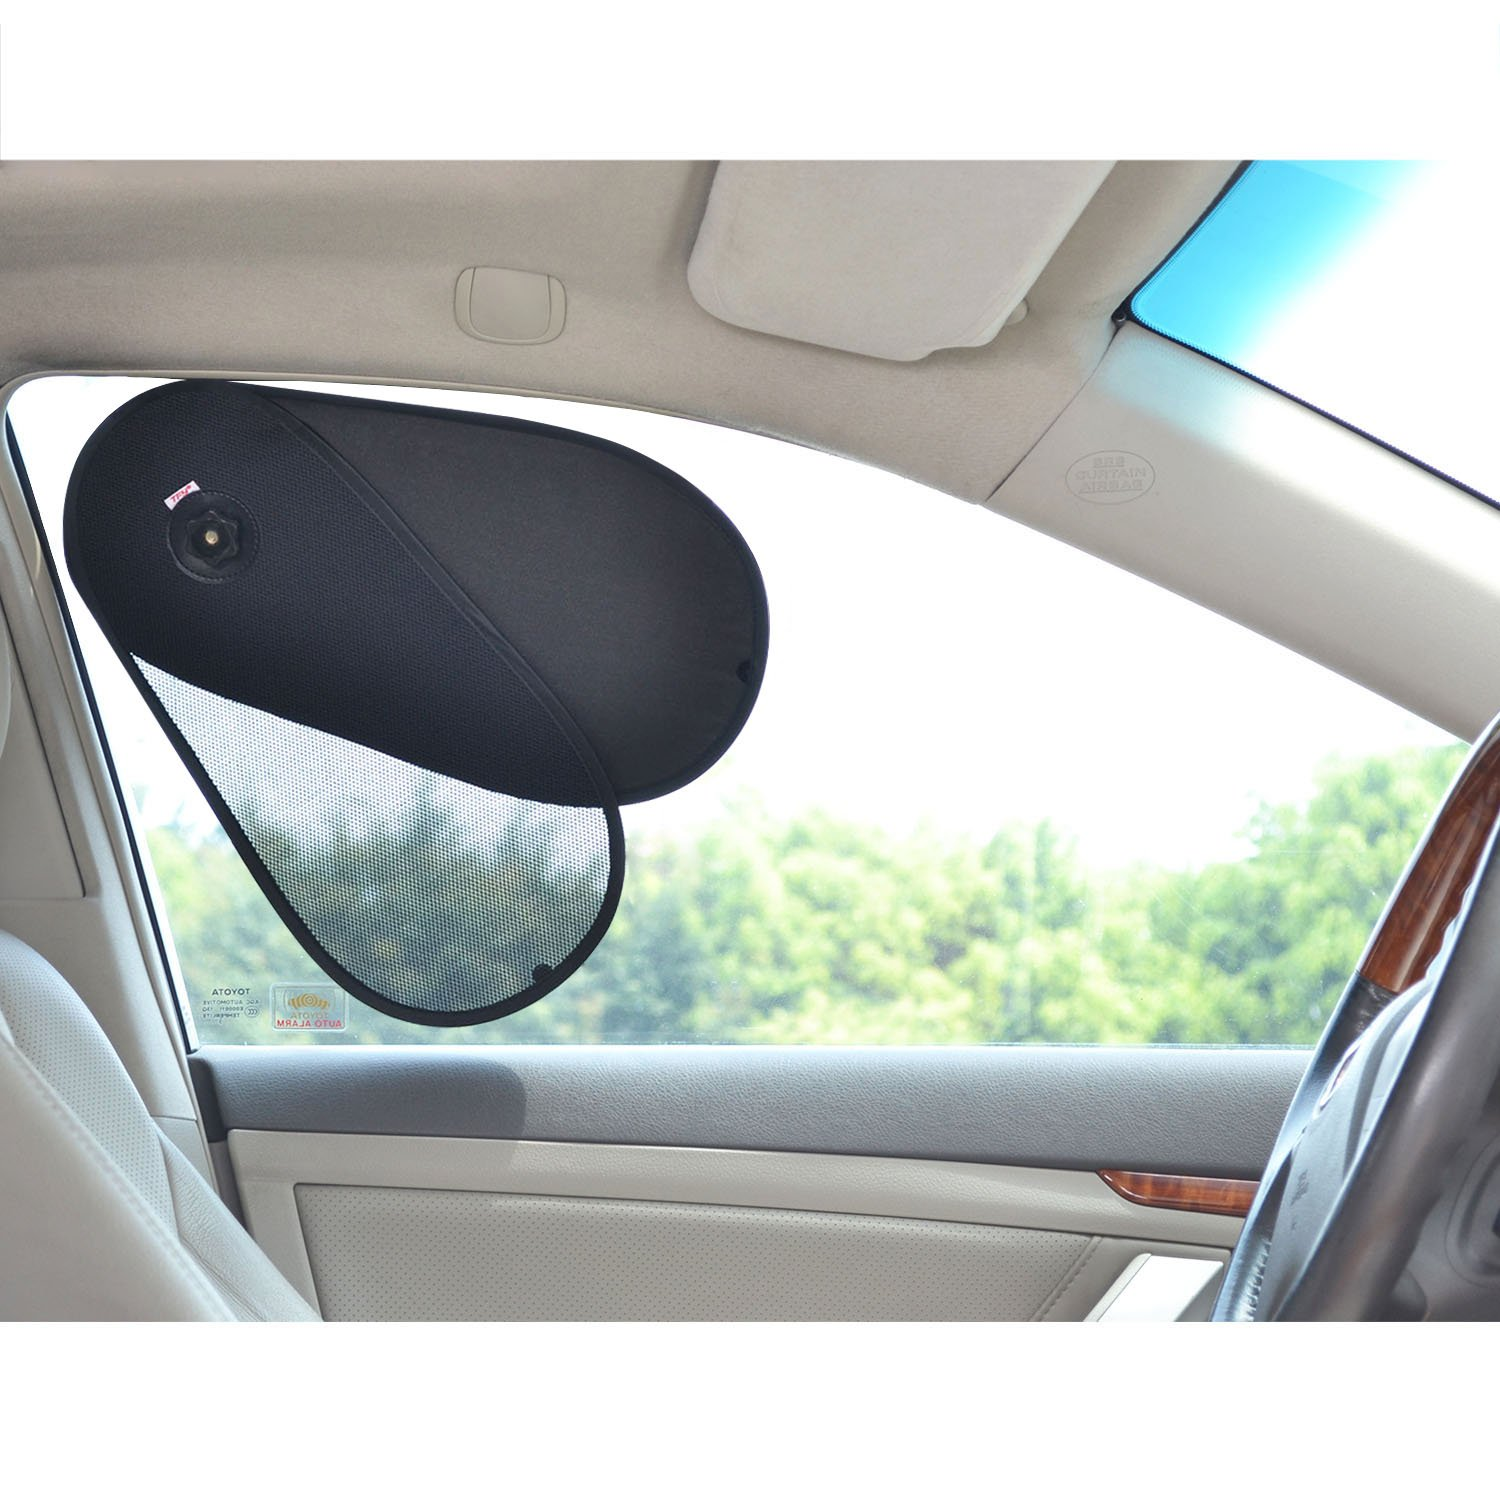 TFY Car Window Sunshine Blocker Sun Shade Protector for Baby   Kids - Fit  Most of Vehicle 54bca334a1f